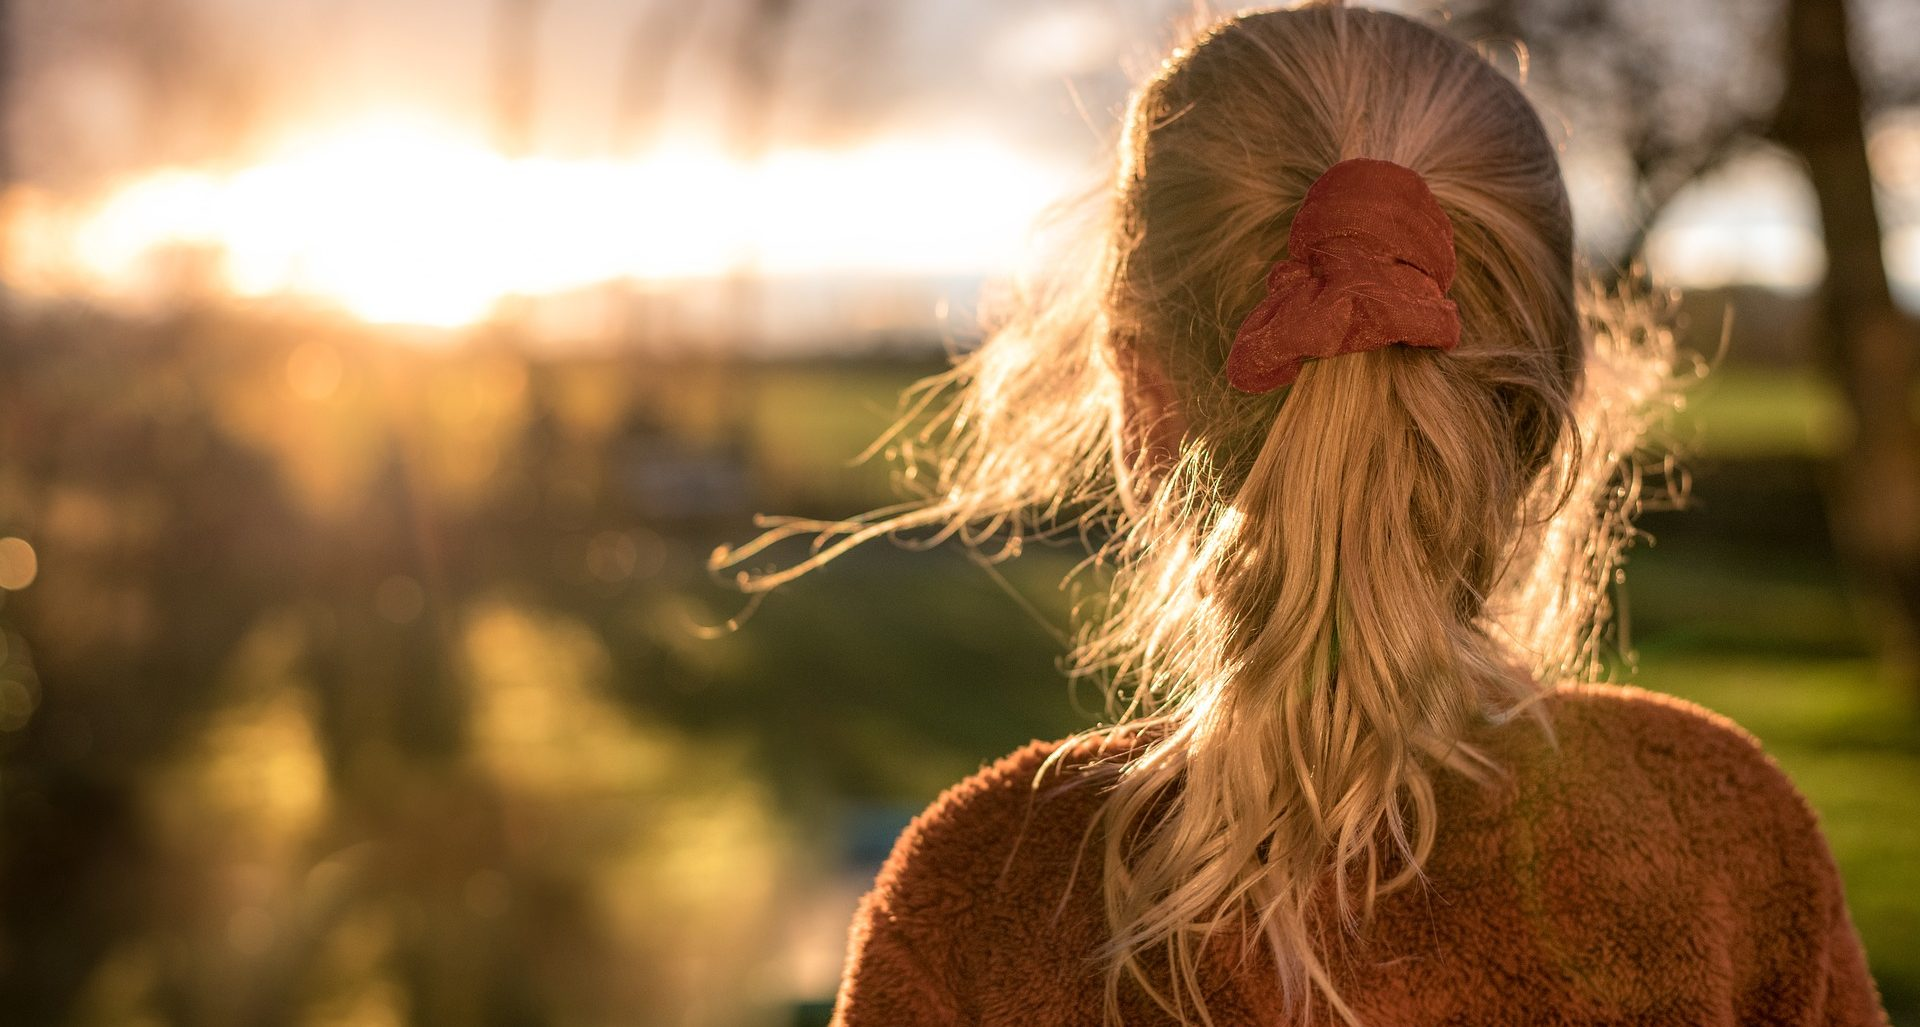 Girl with aponytail looks towards a sunset